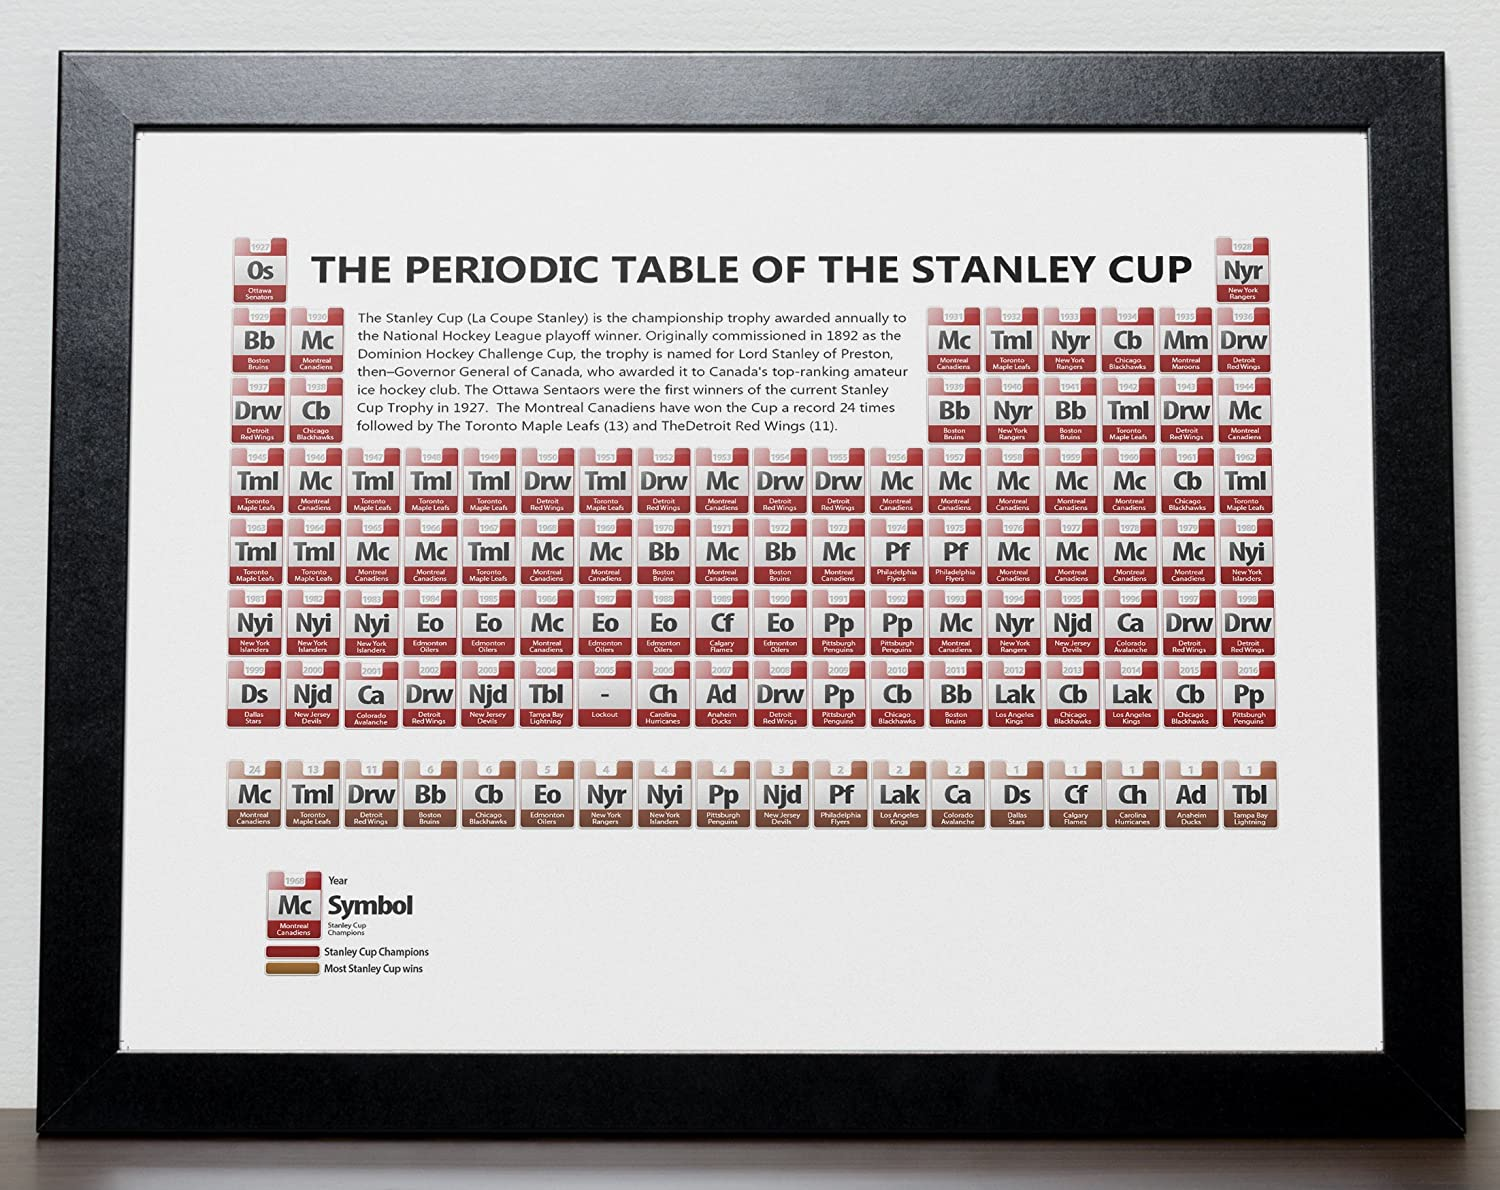 Amazon the periodic table of the stanley cup nhl poster a3 amazon the periodic table of the stanley cup nhl poster a3 size 297cm x 420cm handmade gamestrikefo Images